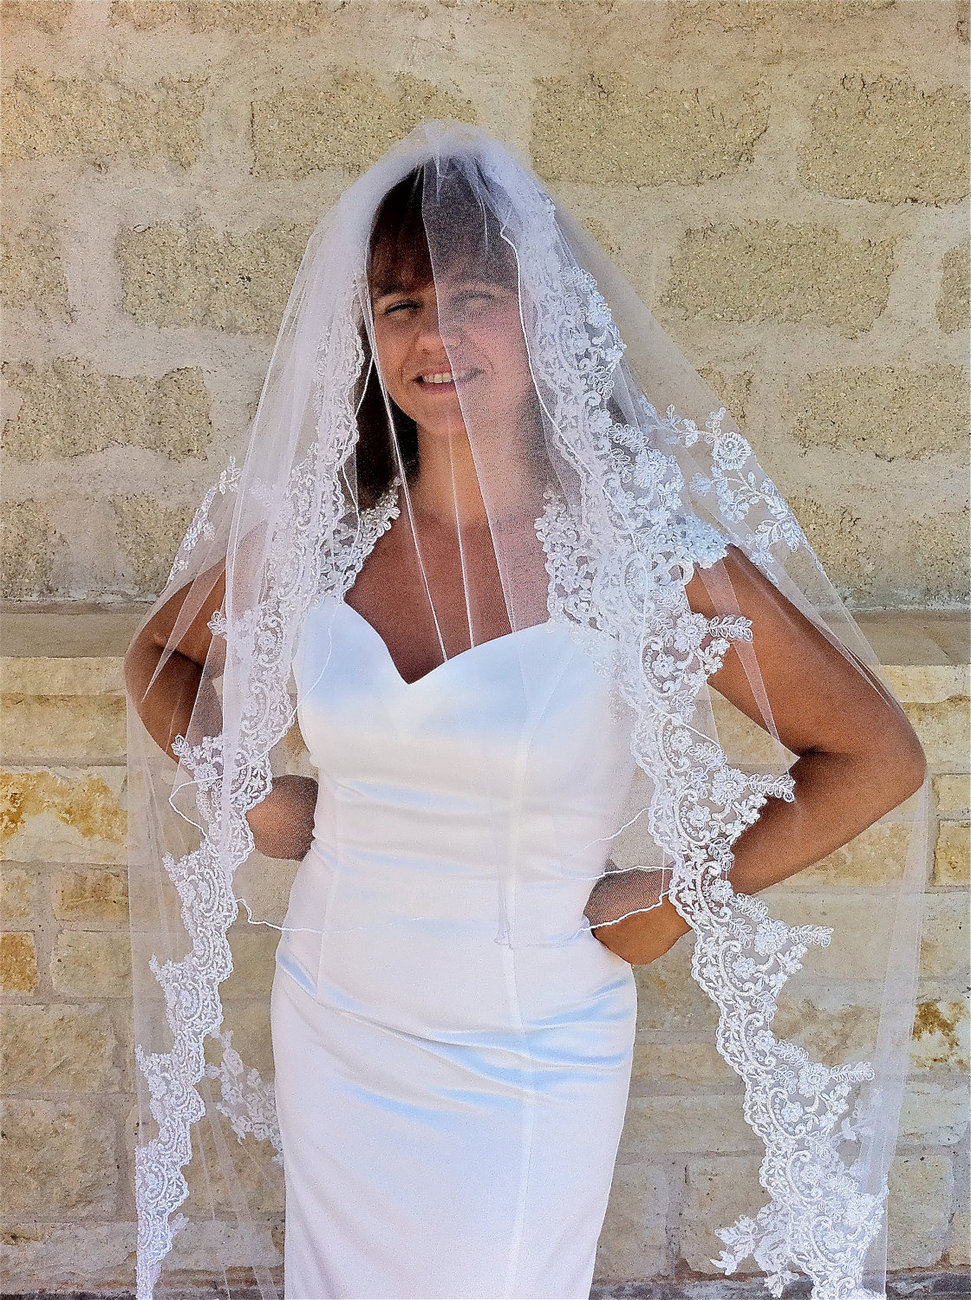 Lace Veil, two tiers cathedral length with flower appliqués and curly edge to